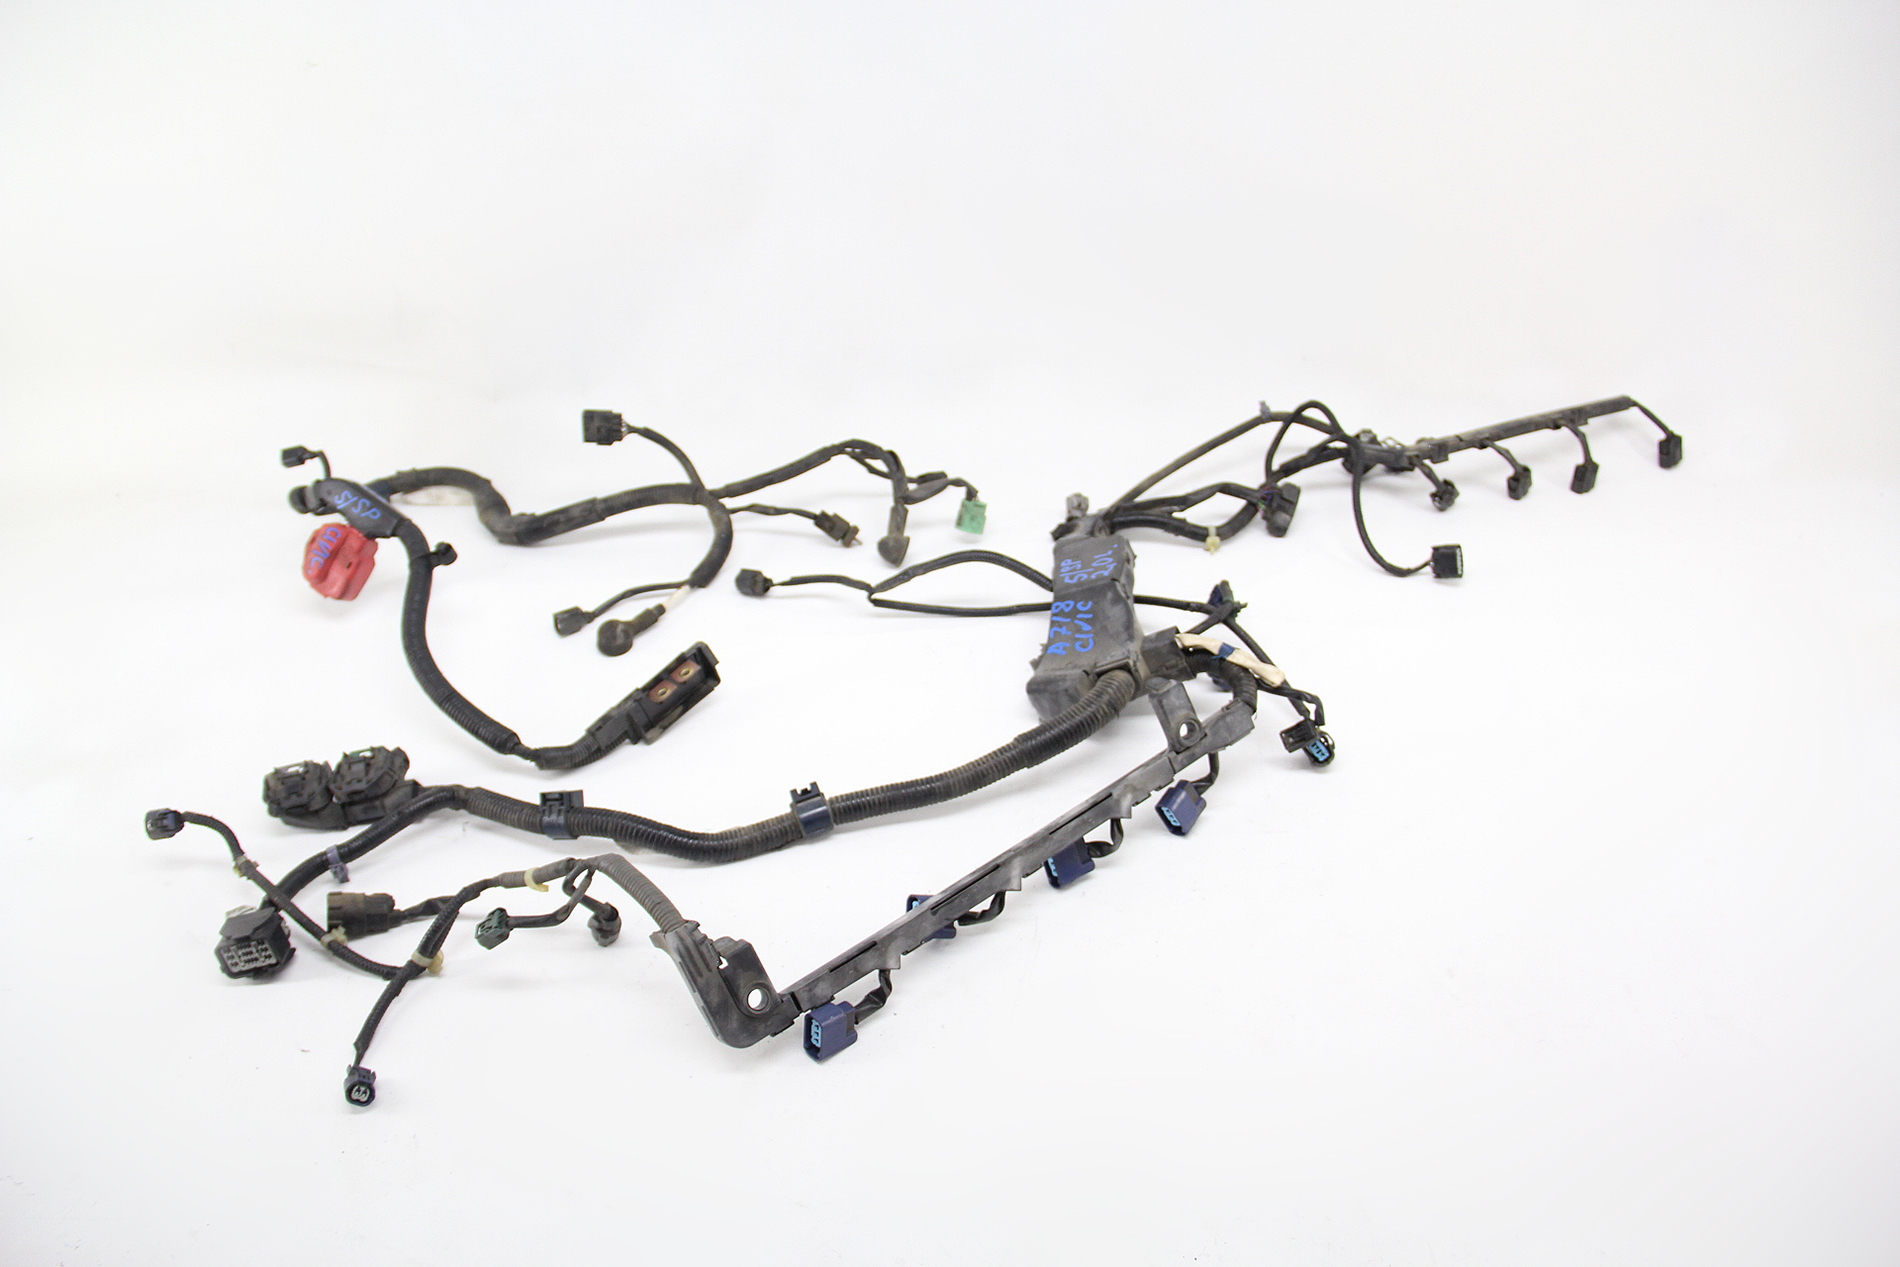 Honda Civic Si Engine Wire Harness 2.0L 32110-RRB-A04 OEM 07 08 09 on